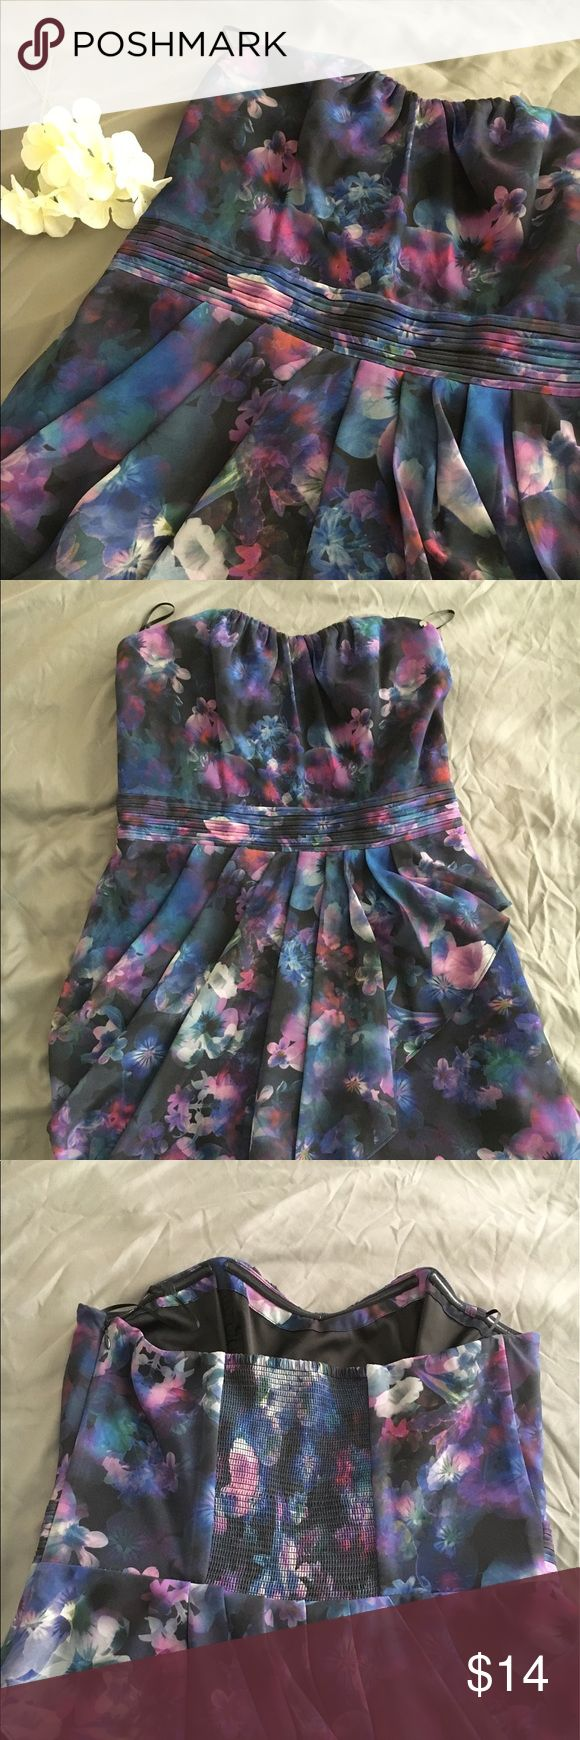 Guess Dress size 10 Guess Strapless Dress size 10. Used in good condition. Pretty scalloped/ draped with a slip underneath. Length roughly 28 inches. Guess Dresses Strapless